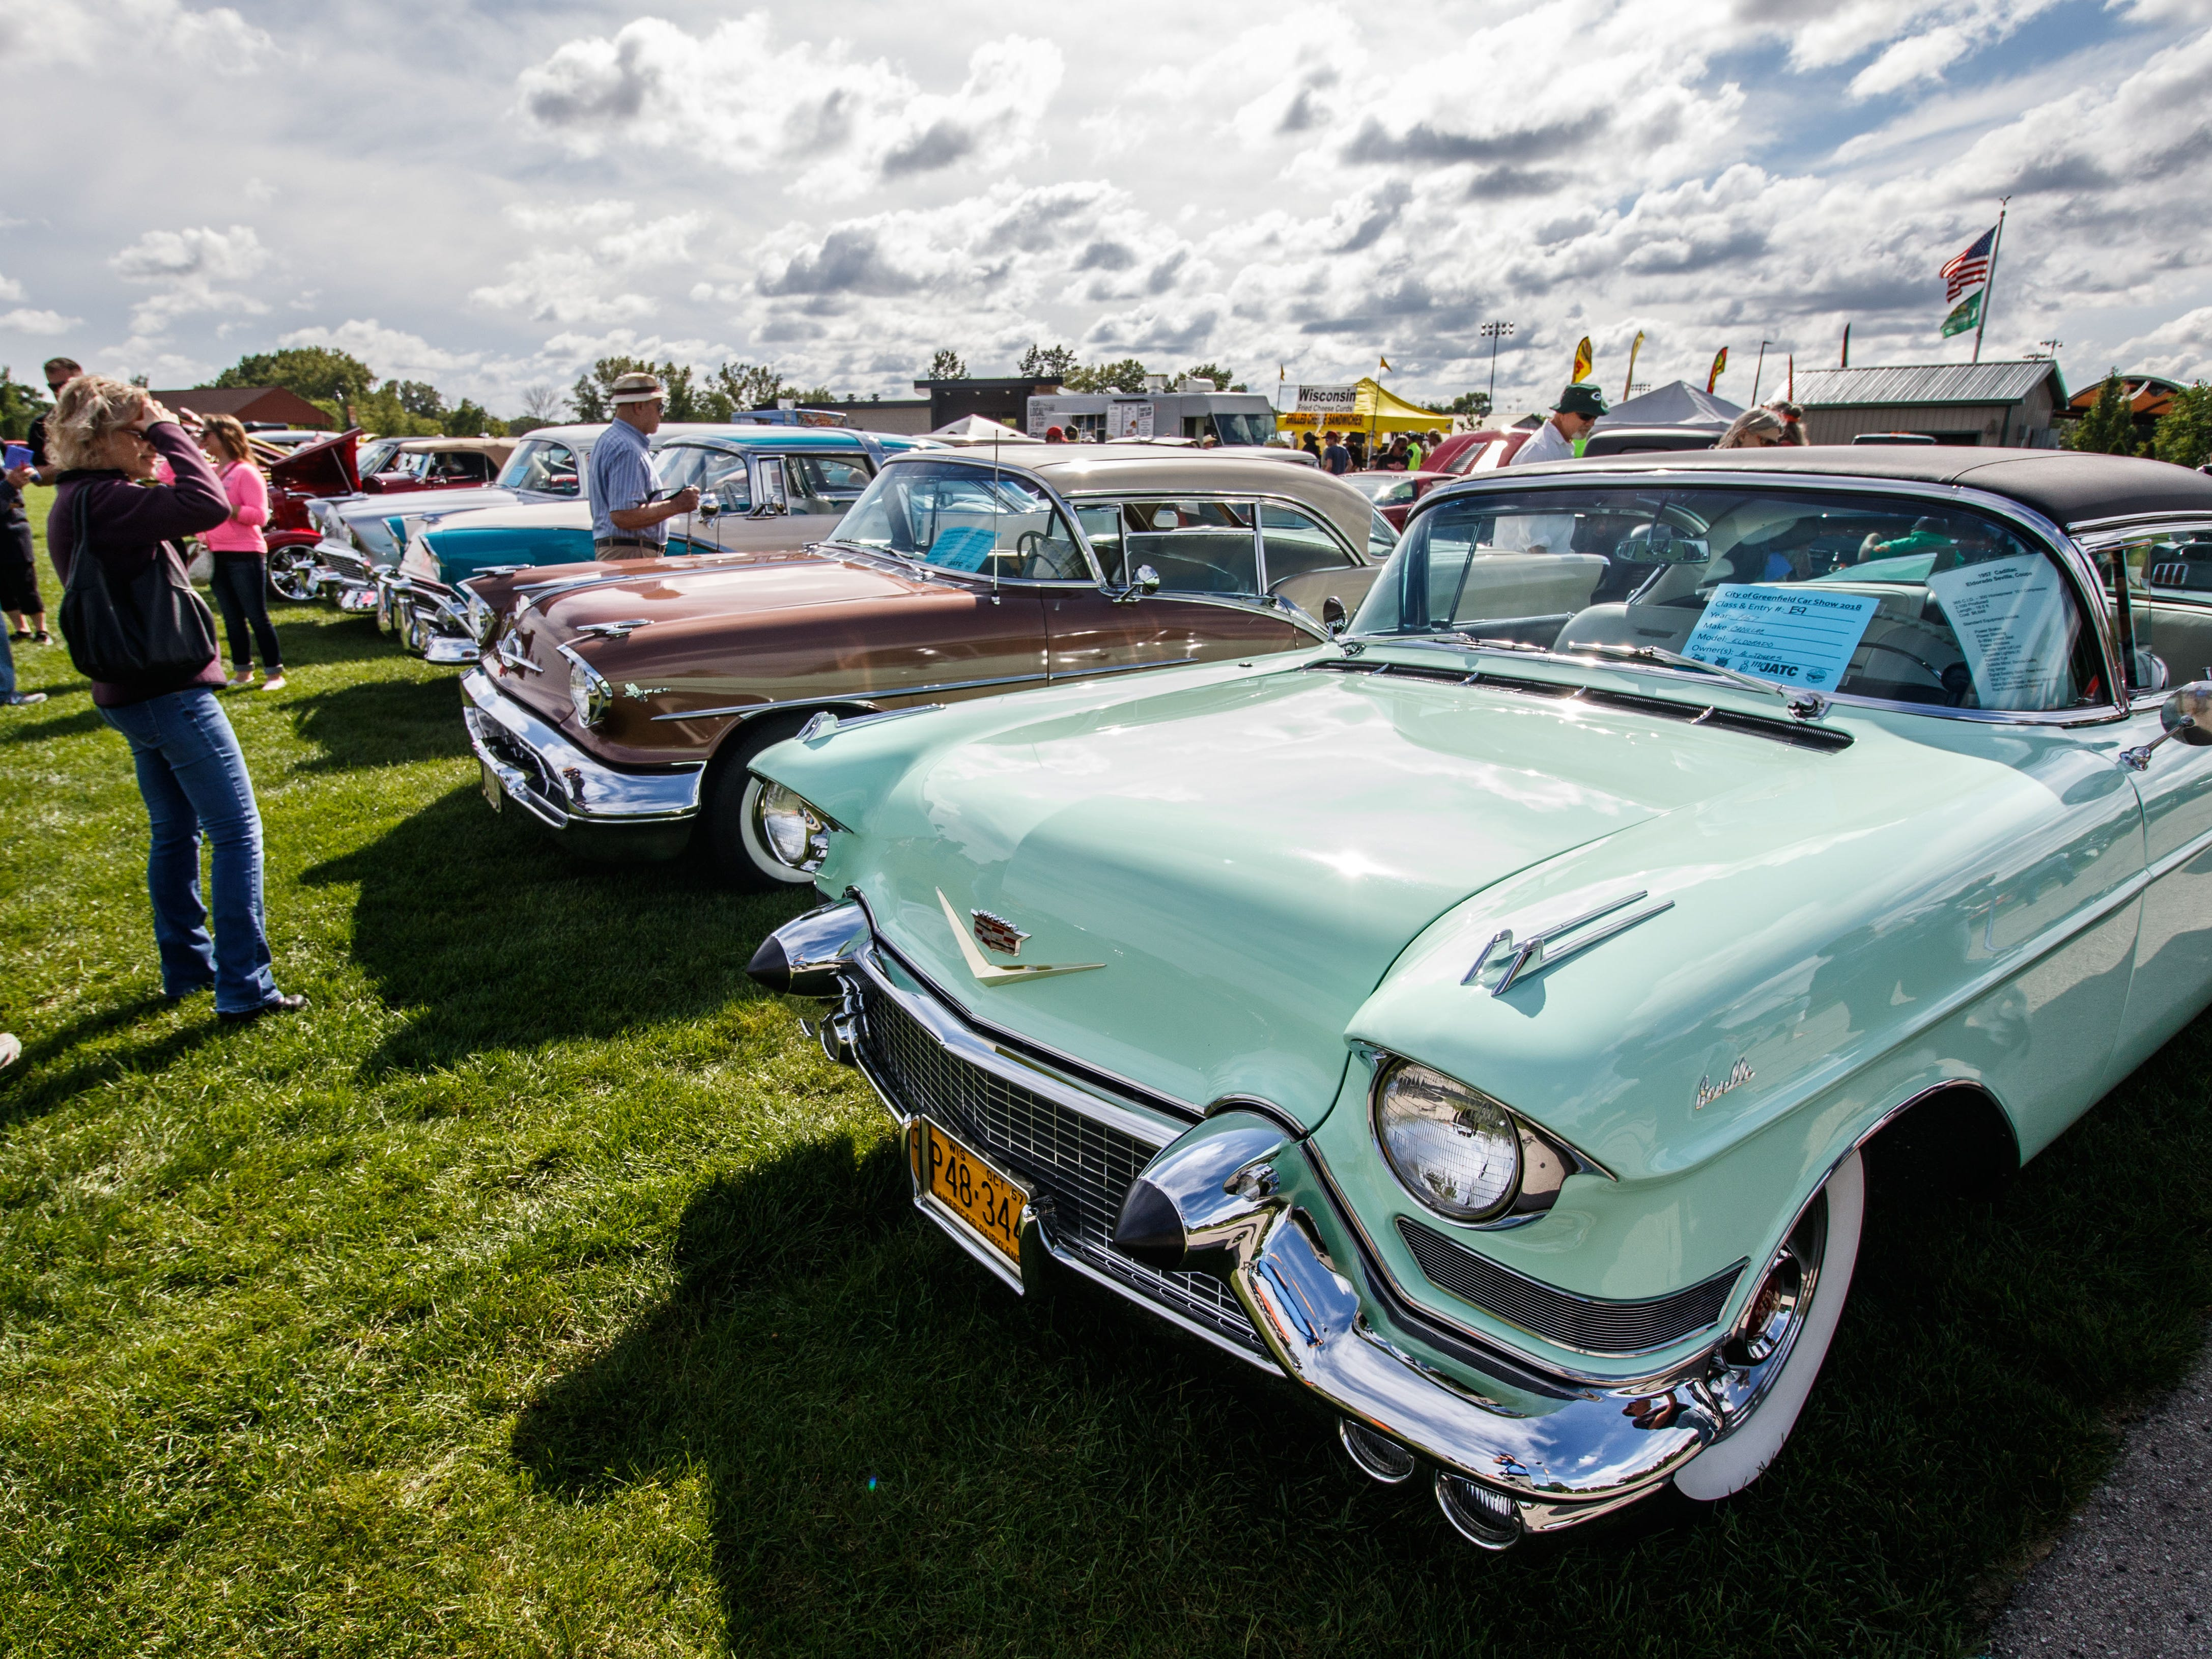 Car enthusiasts are treated to a variety of modern, vintage, classic and custom vehicles during the City of Greenfield's 2nd annual Car Show in Konkel Park on Saturday, Sept. 8, 2018.